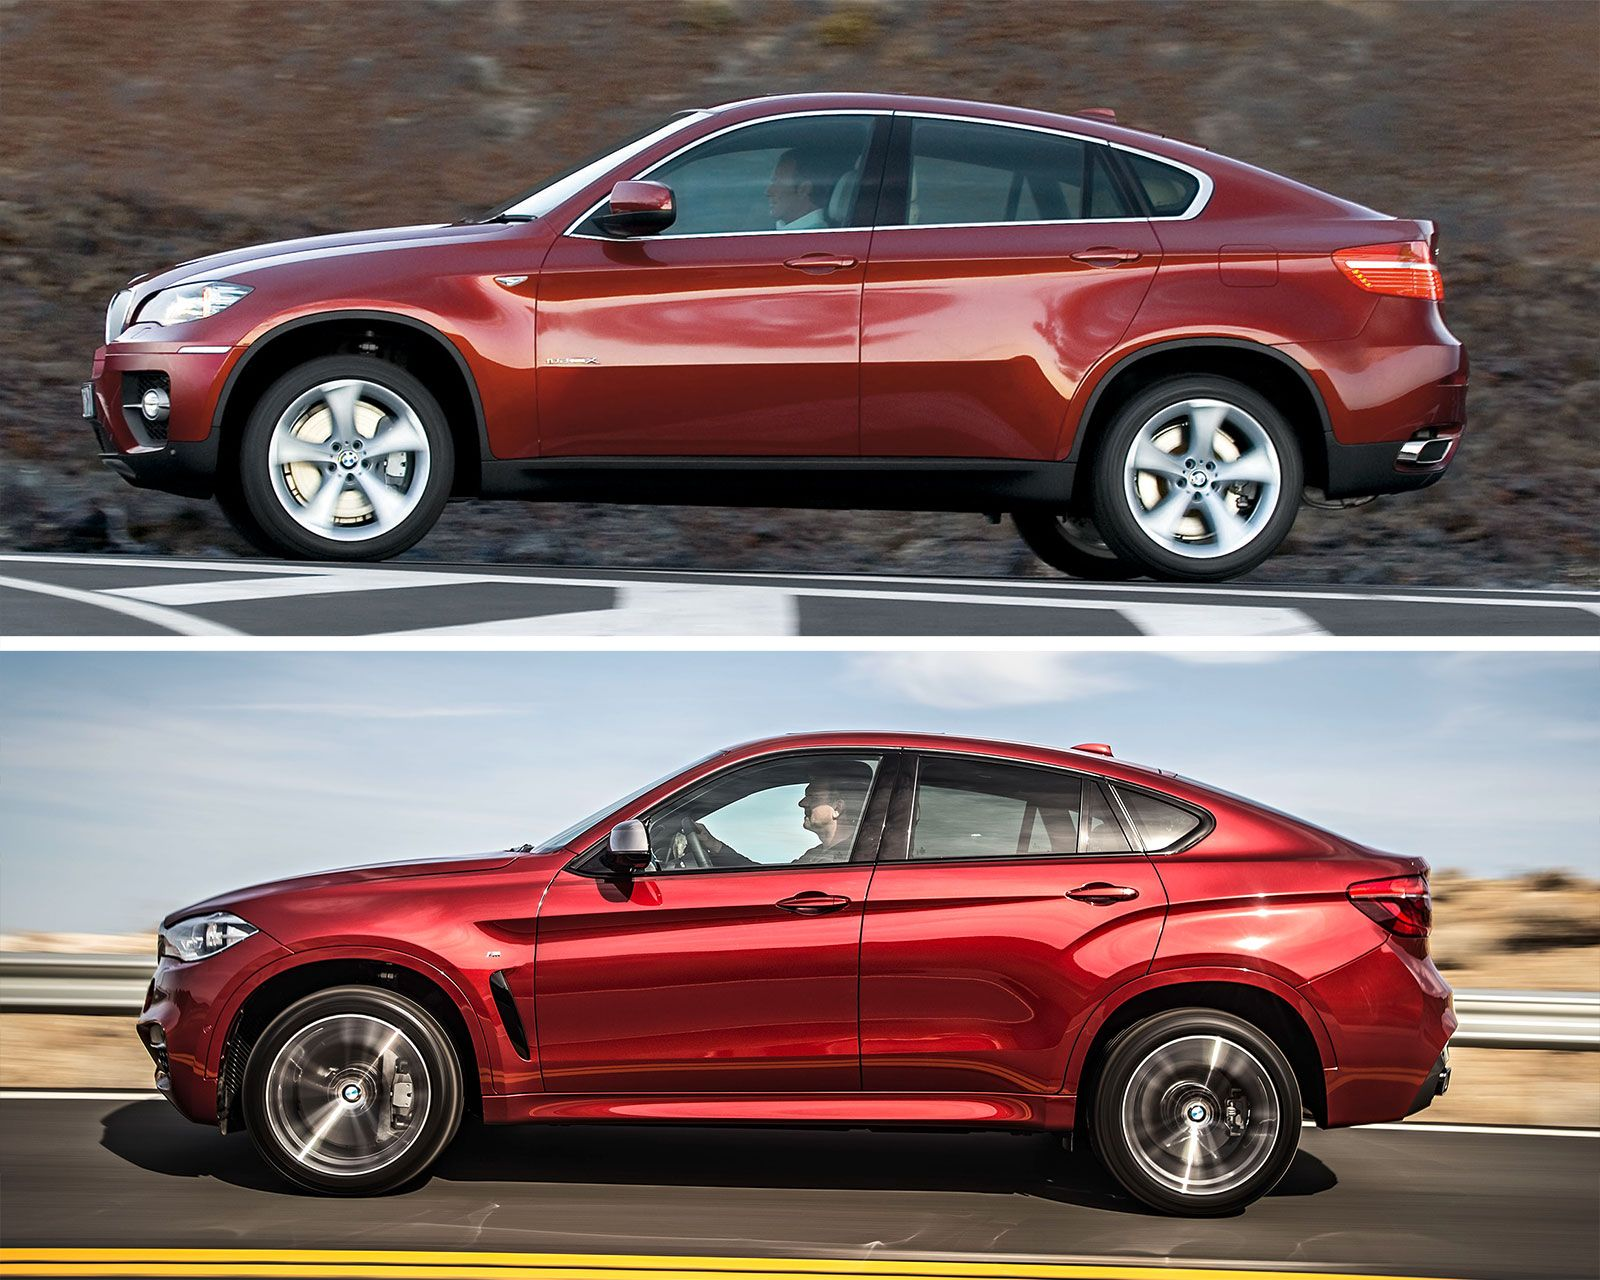 BMW X6 1st and 2nd generation Design parison